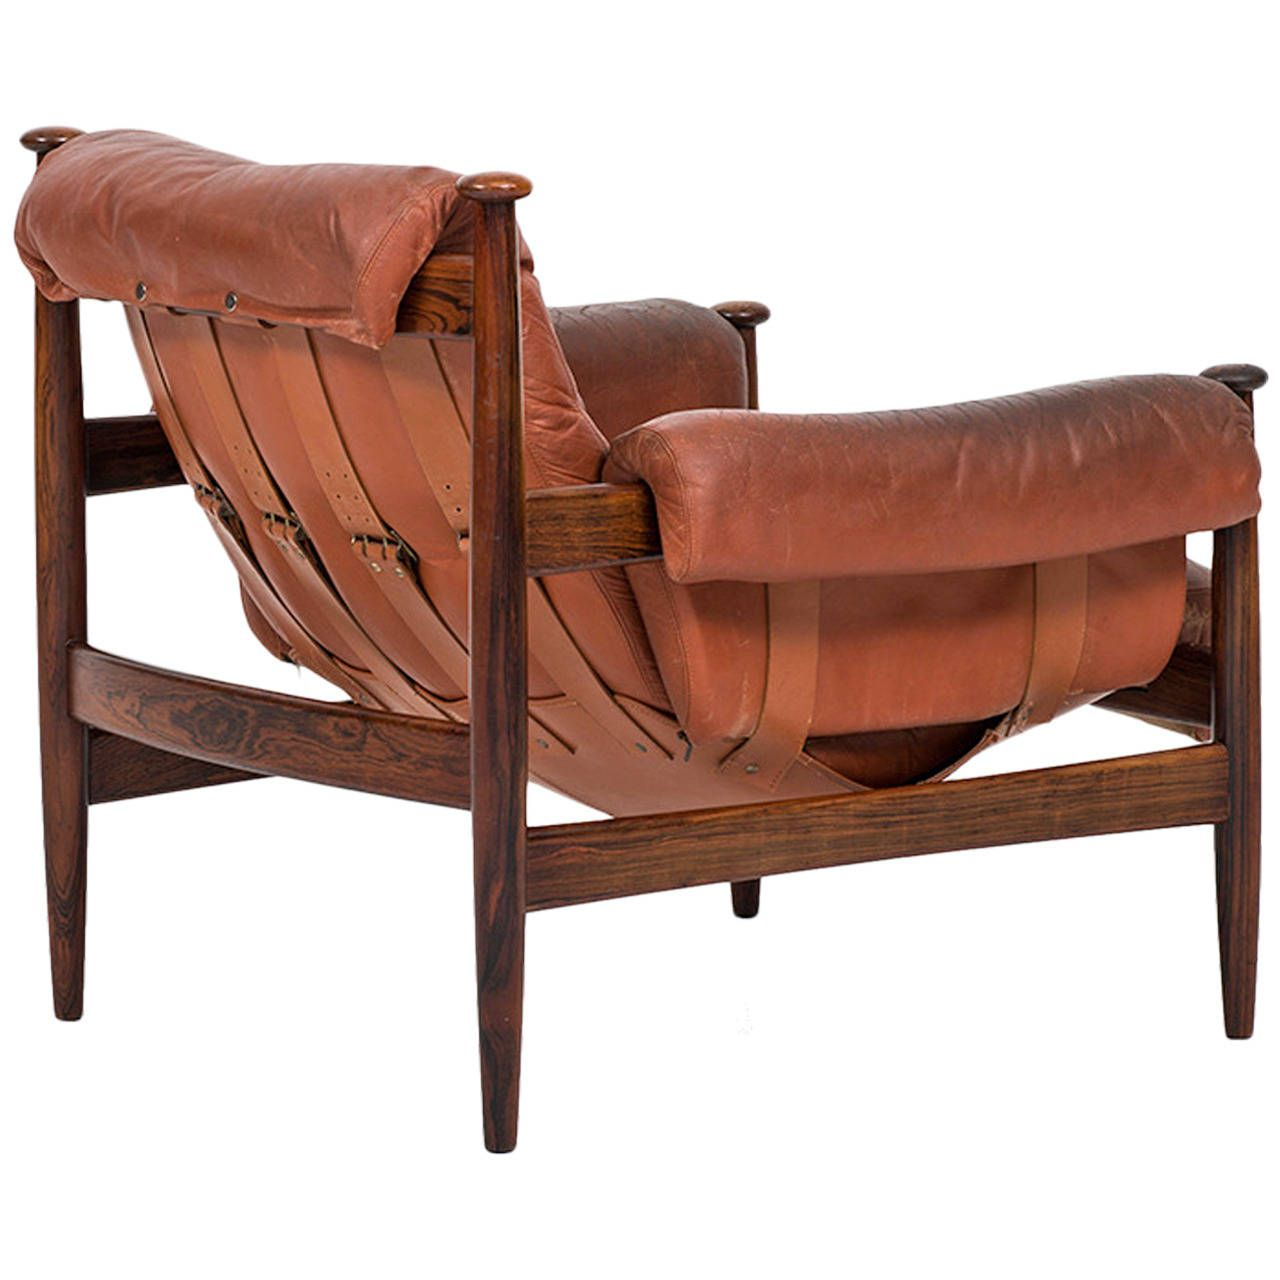 Safari Chair In Rosewood And Red Leather By Ire Möbler In Sweden